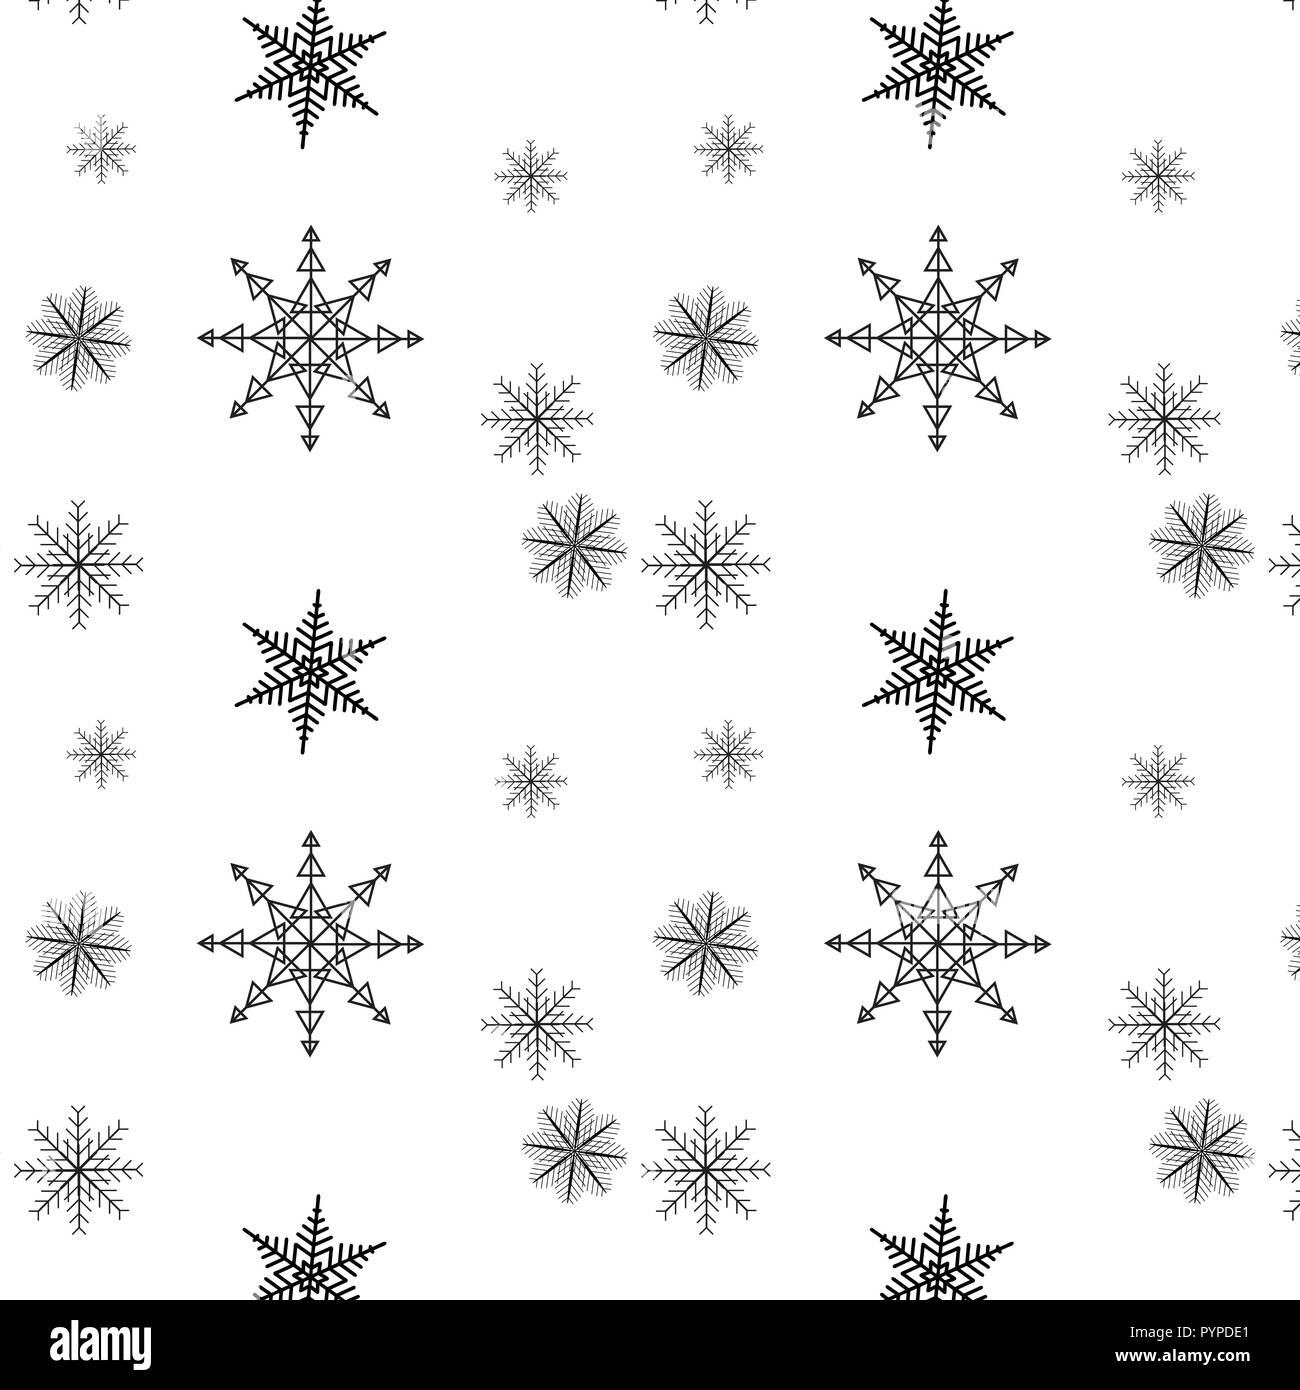 Christmas Wallpaper Black And White Stock Photos Images Alamy